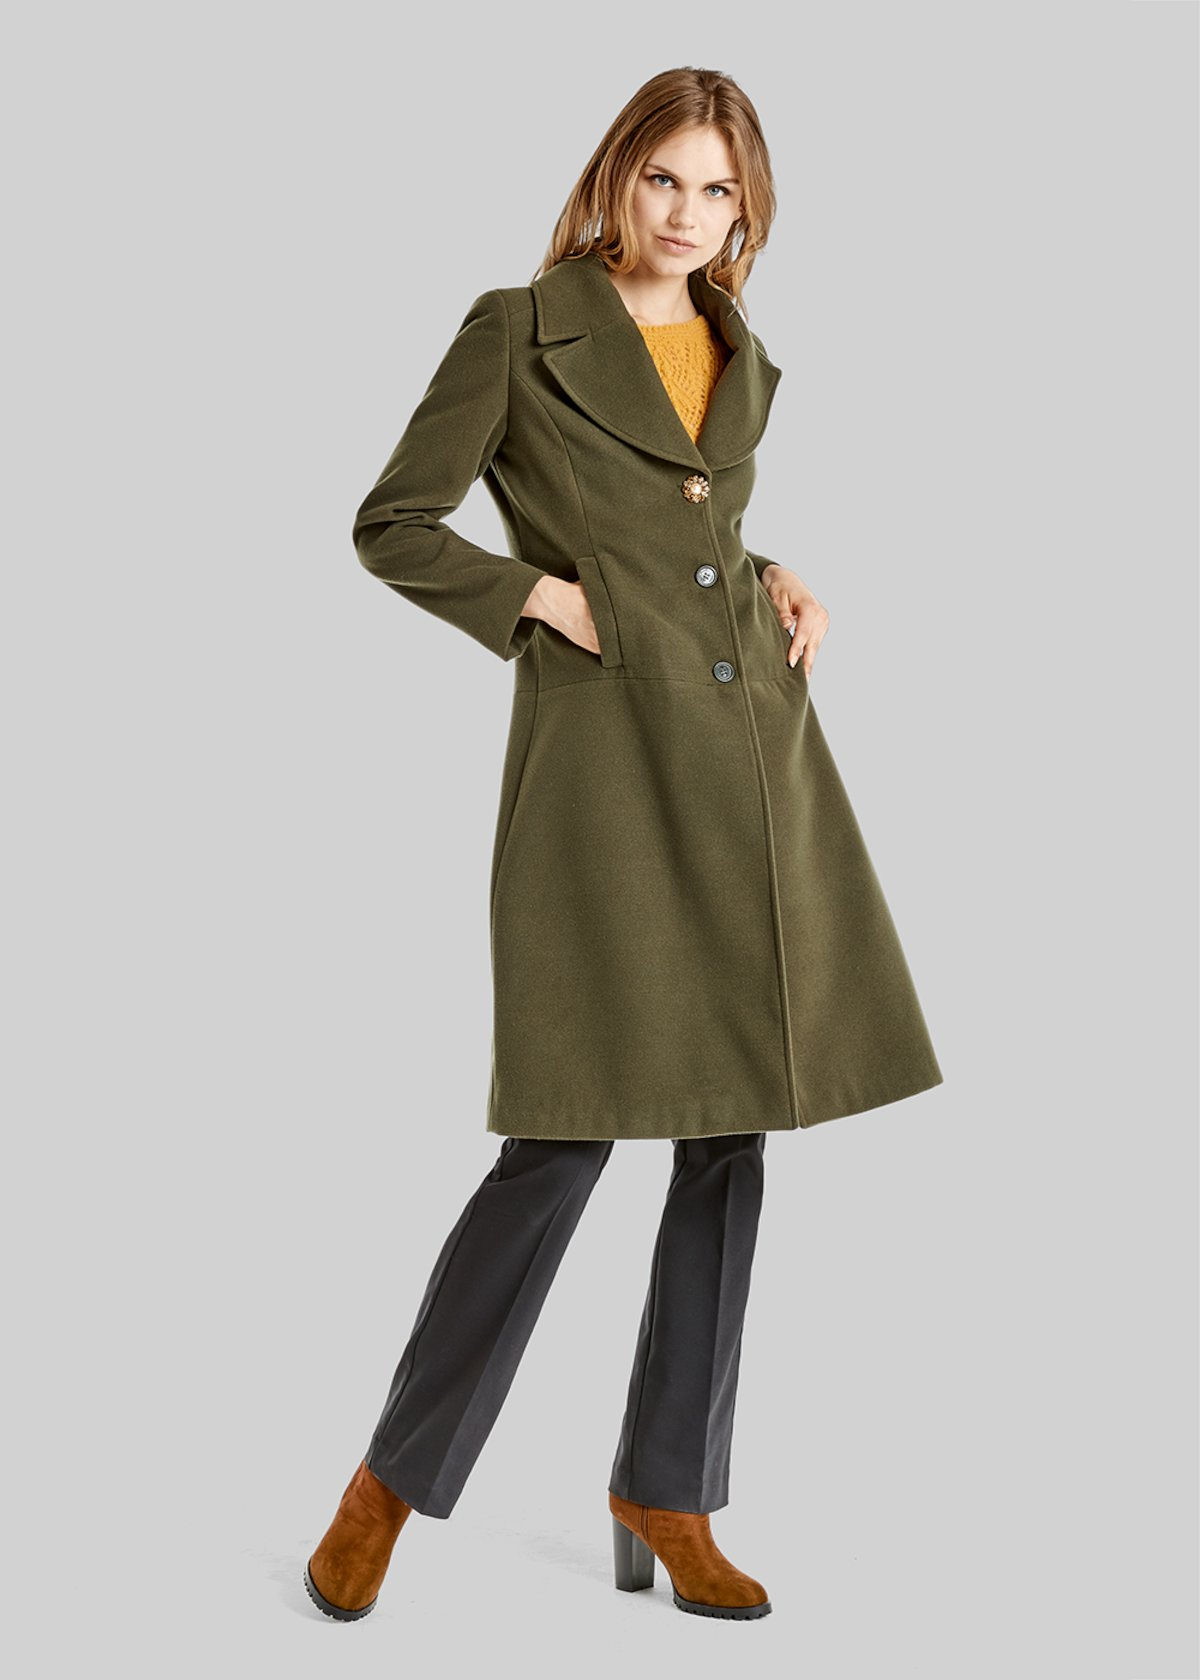 Constant long coat with jewel button detail